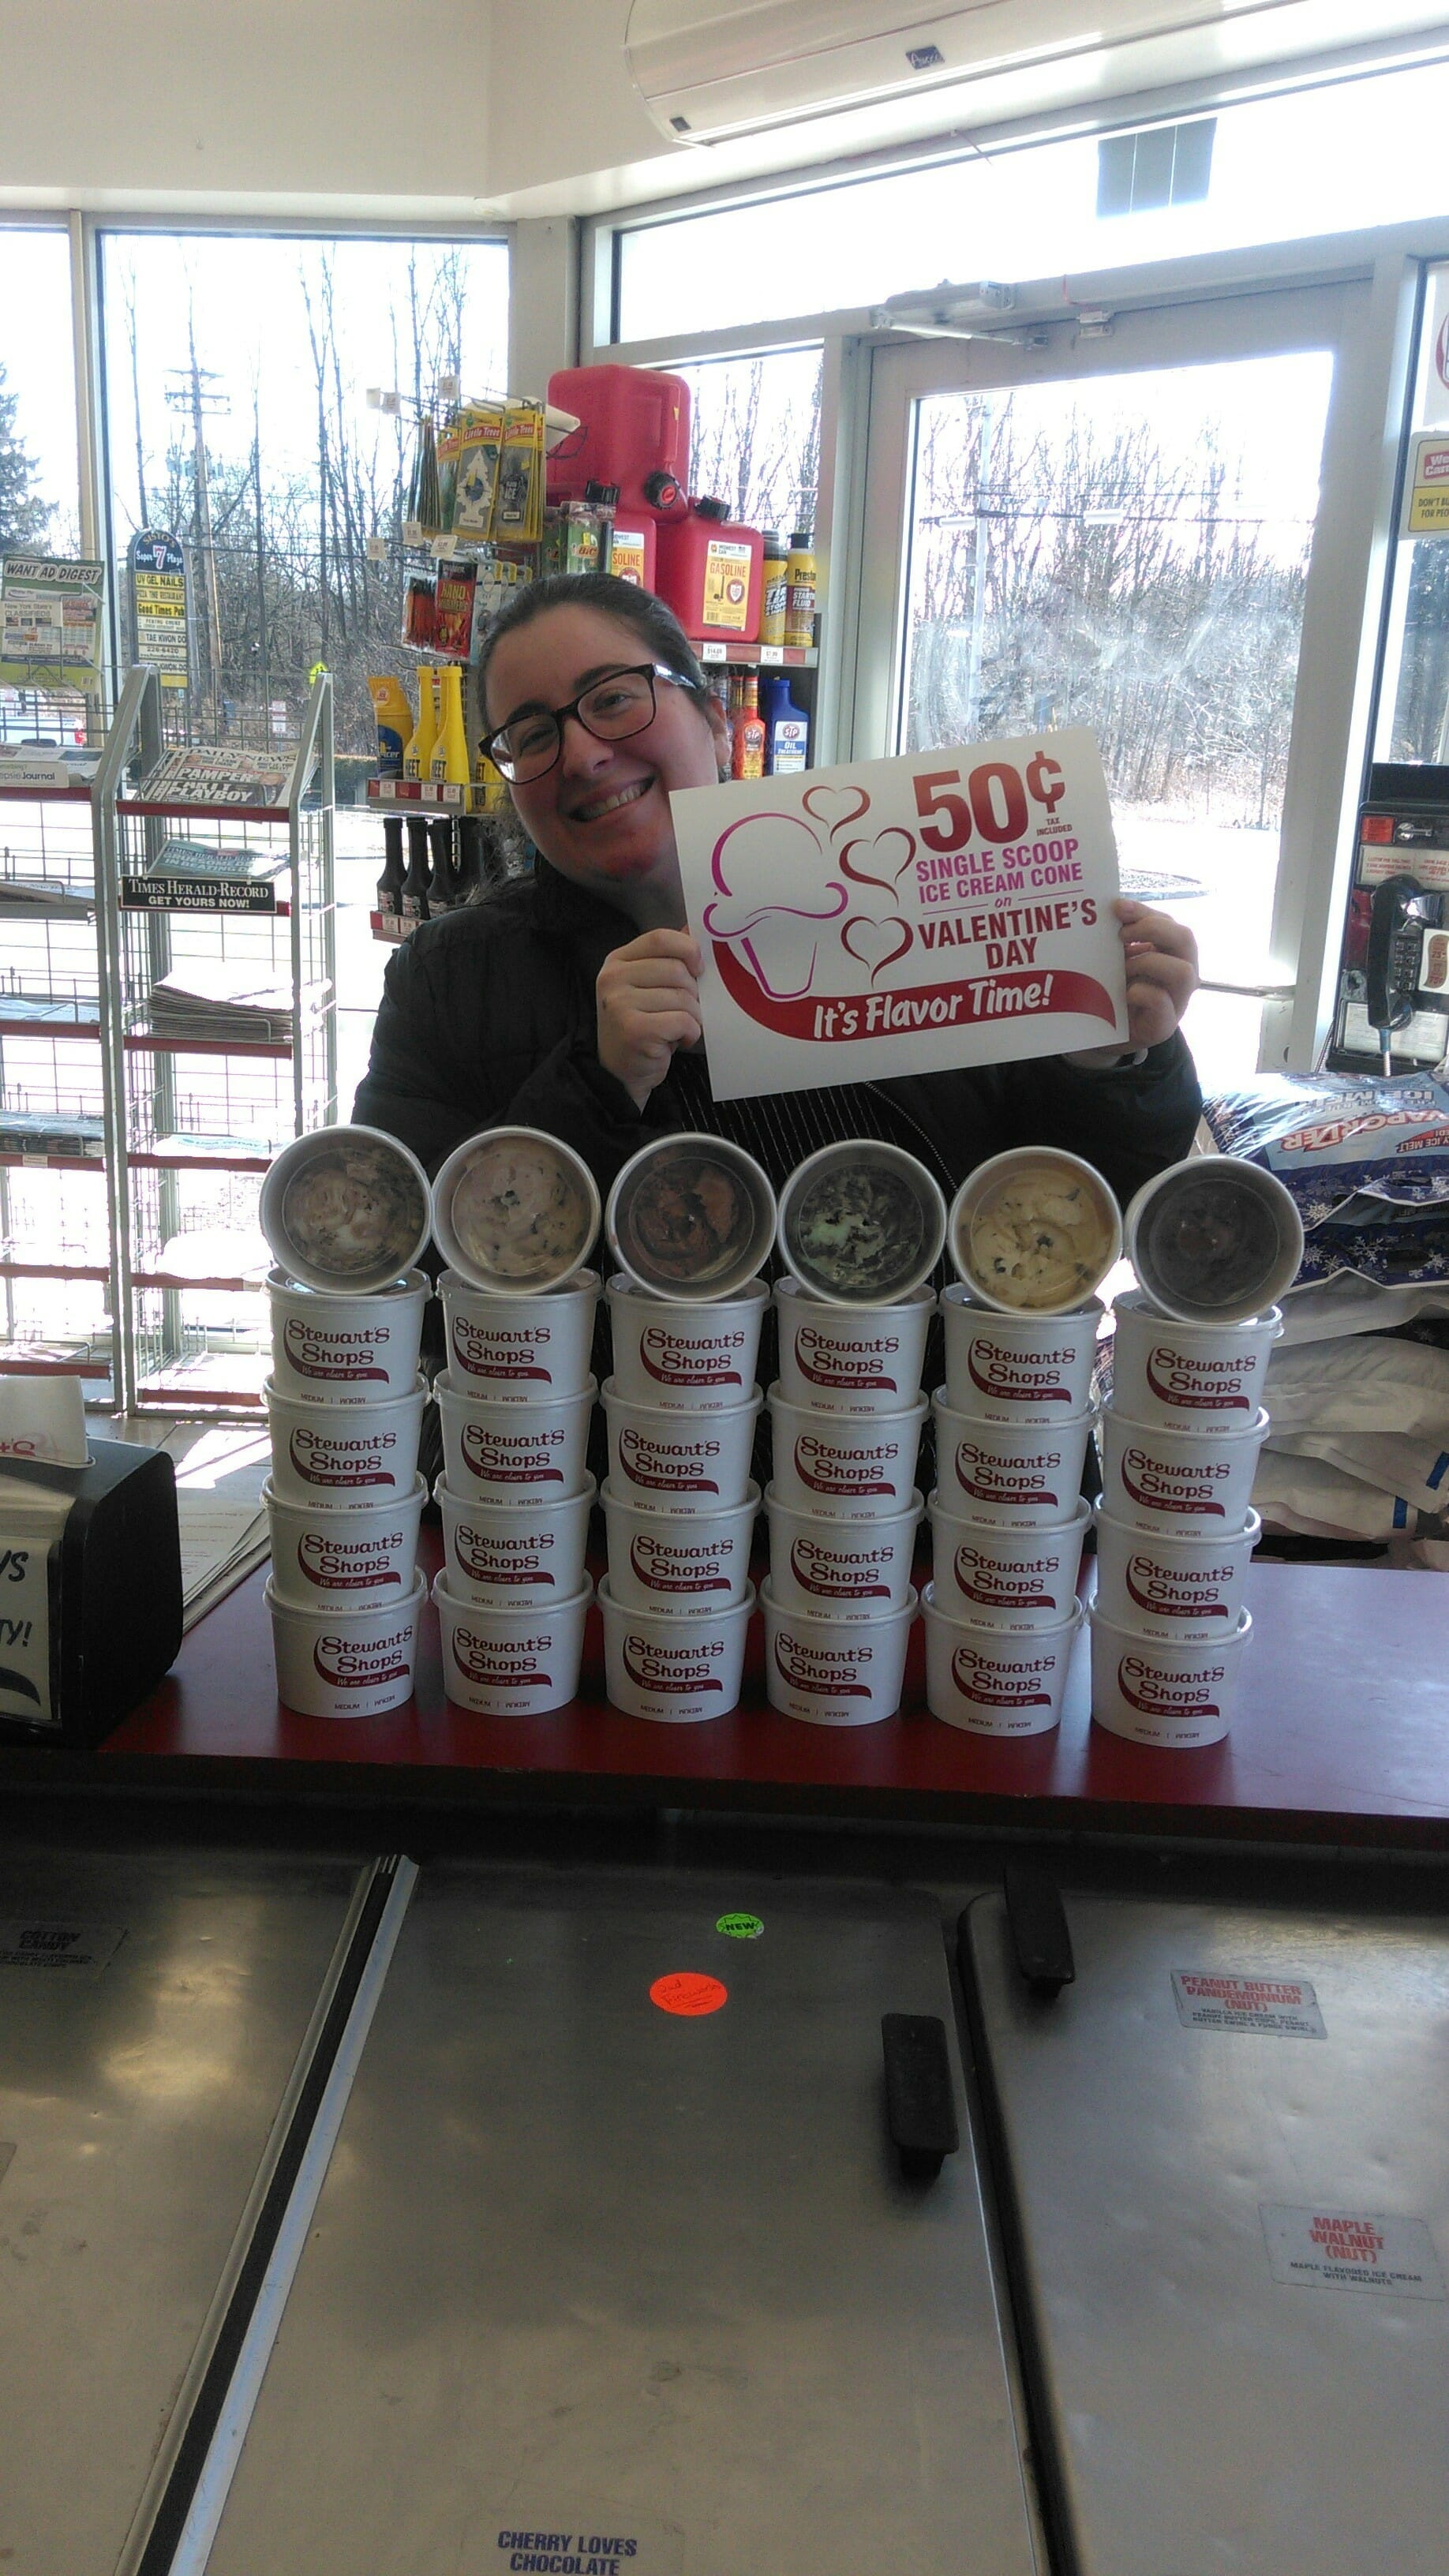 A woman hold a sign at Stewarts shops - 50 cents valentines cones